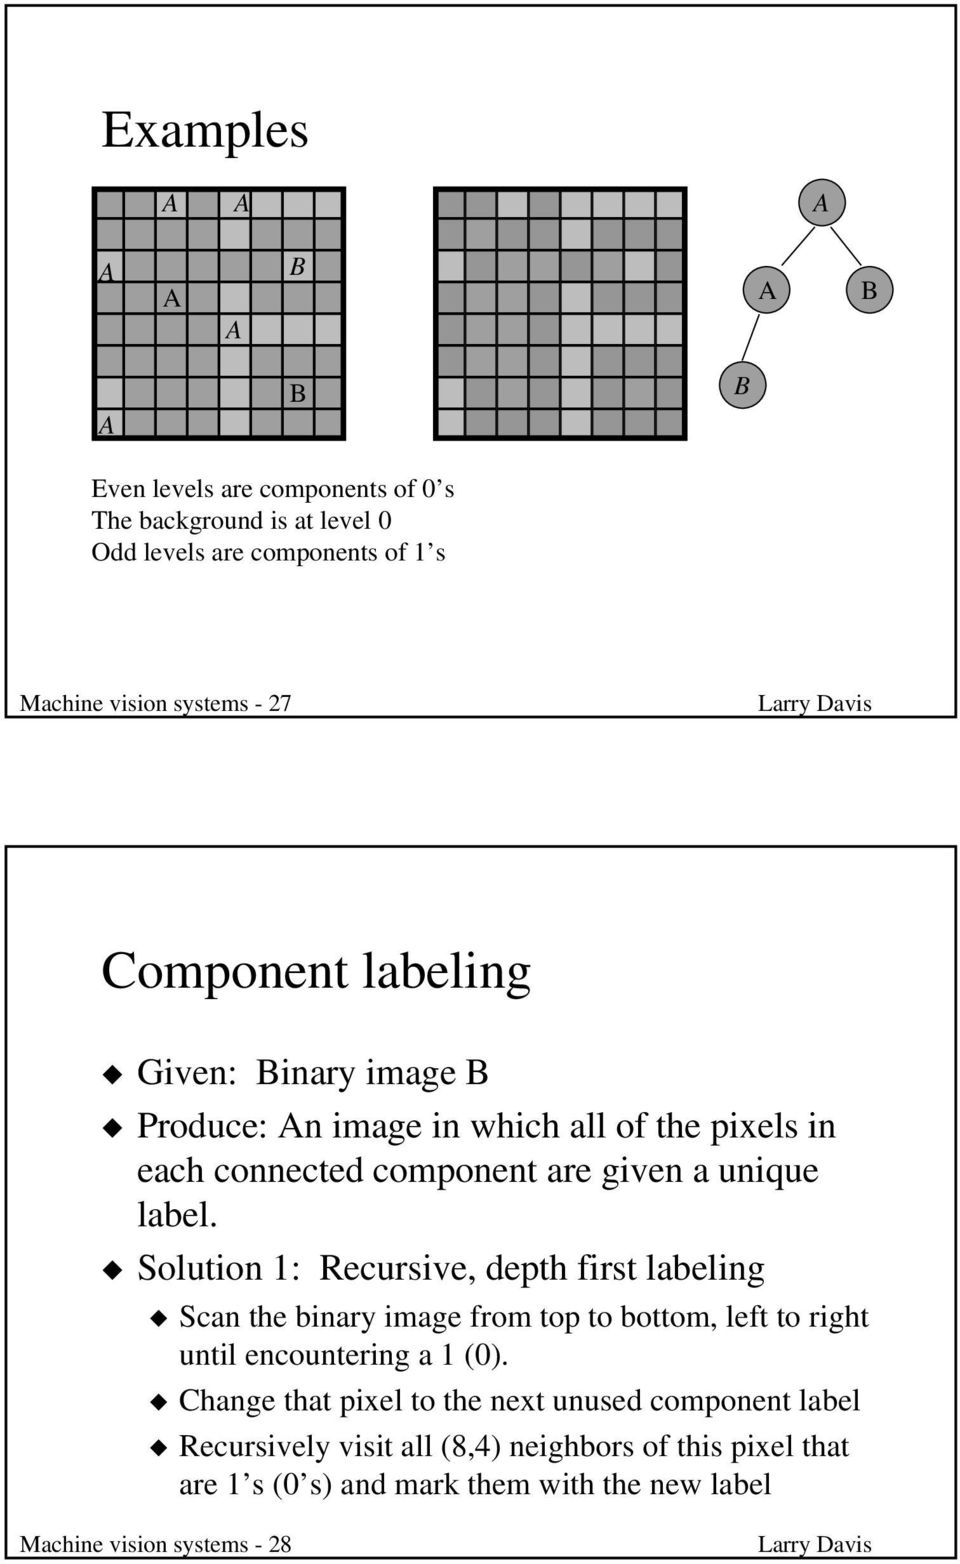 Solution 1: Recursive, depth first labeling Scan the binary image from top to bottom, left to right until encountering a 1 (0).